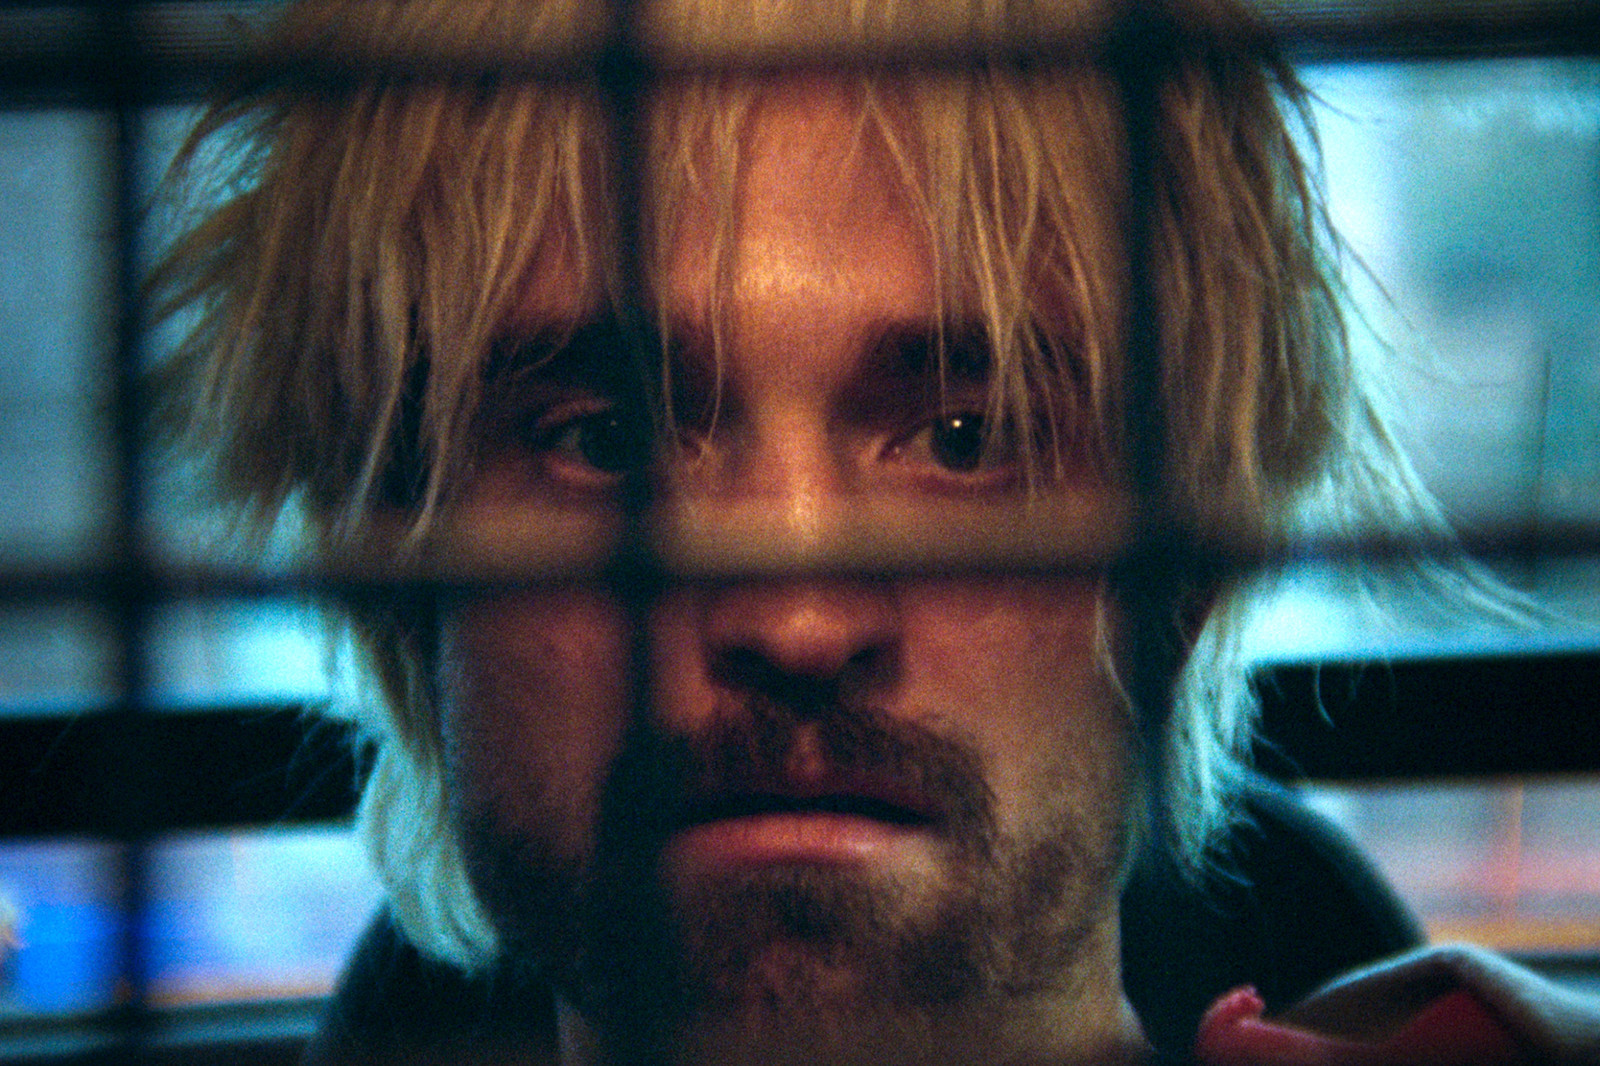 Good Time Safdie Brothers Movie A24 Robert Pattinson Buddy Duress Barkhad Abdi Taliah Webster Aaron Bondaroff Know Wave New York City Film